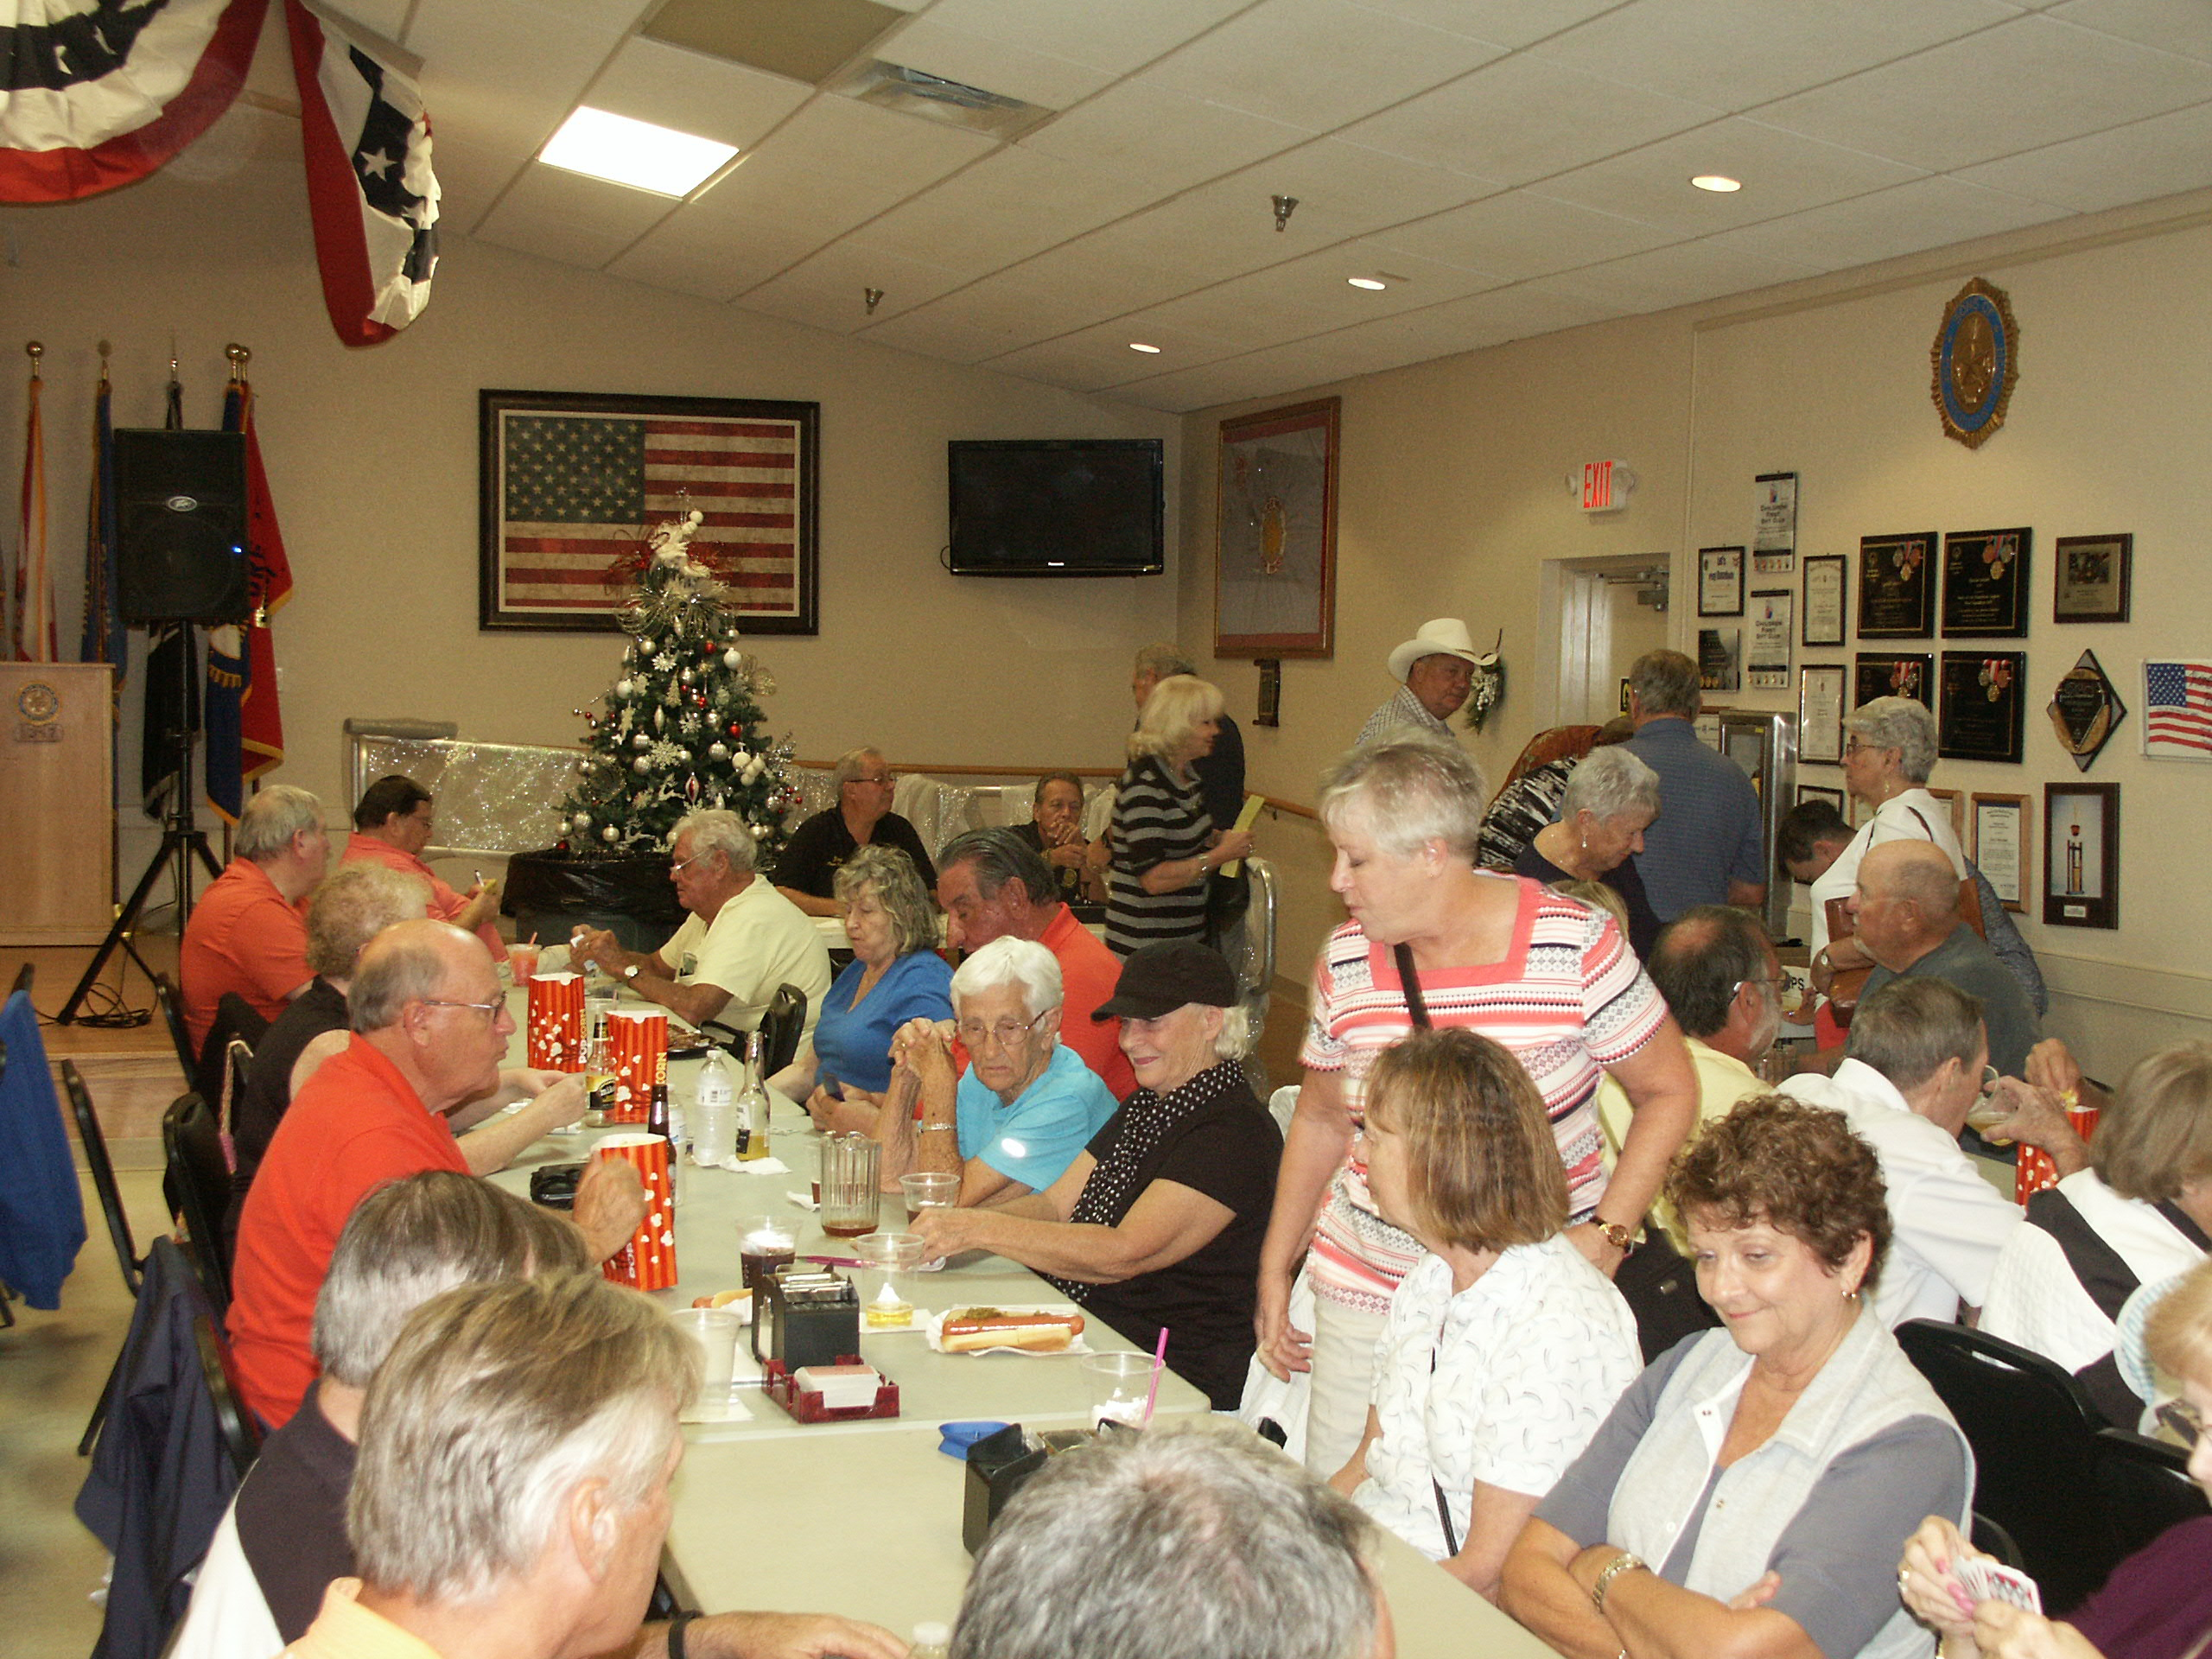 http://www.florida-legion.com/christmas17hall1.JPG